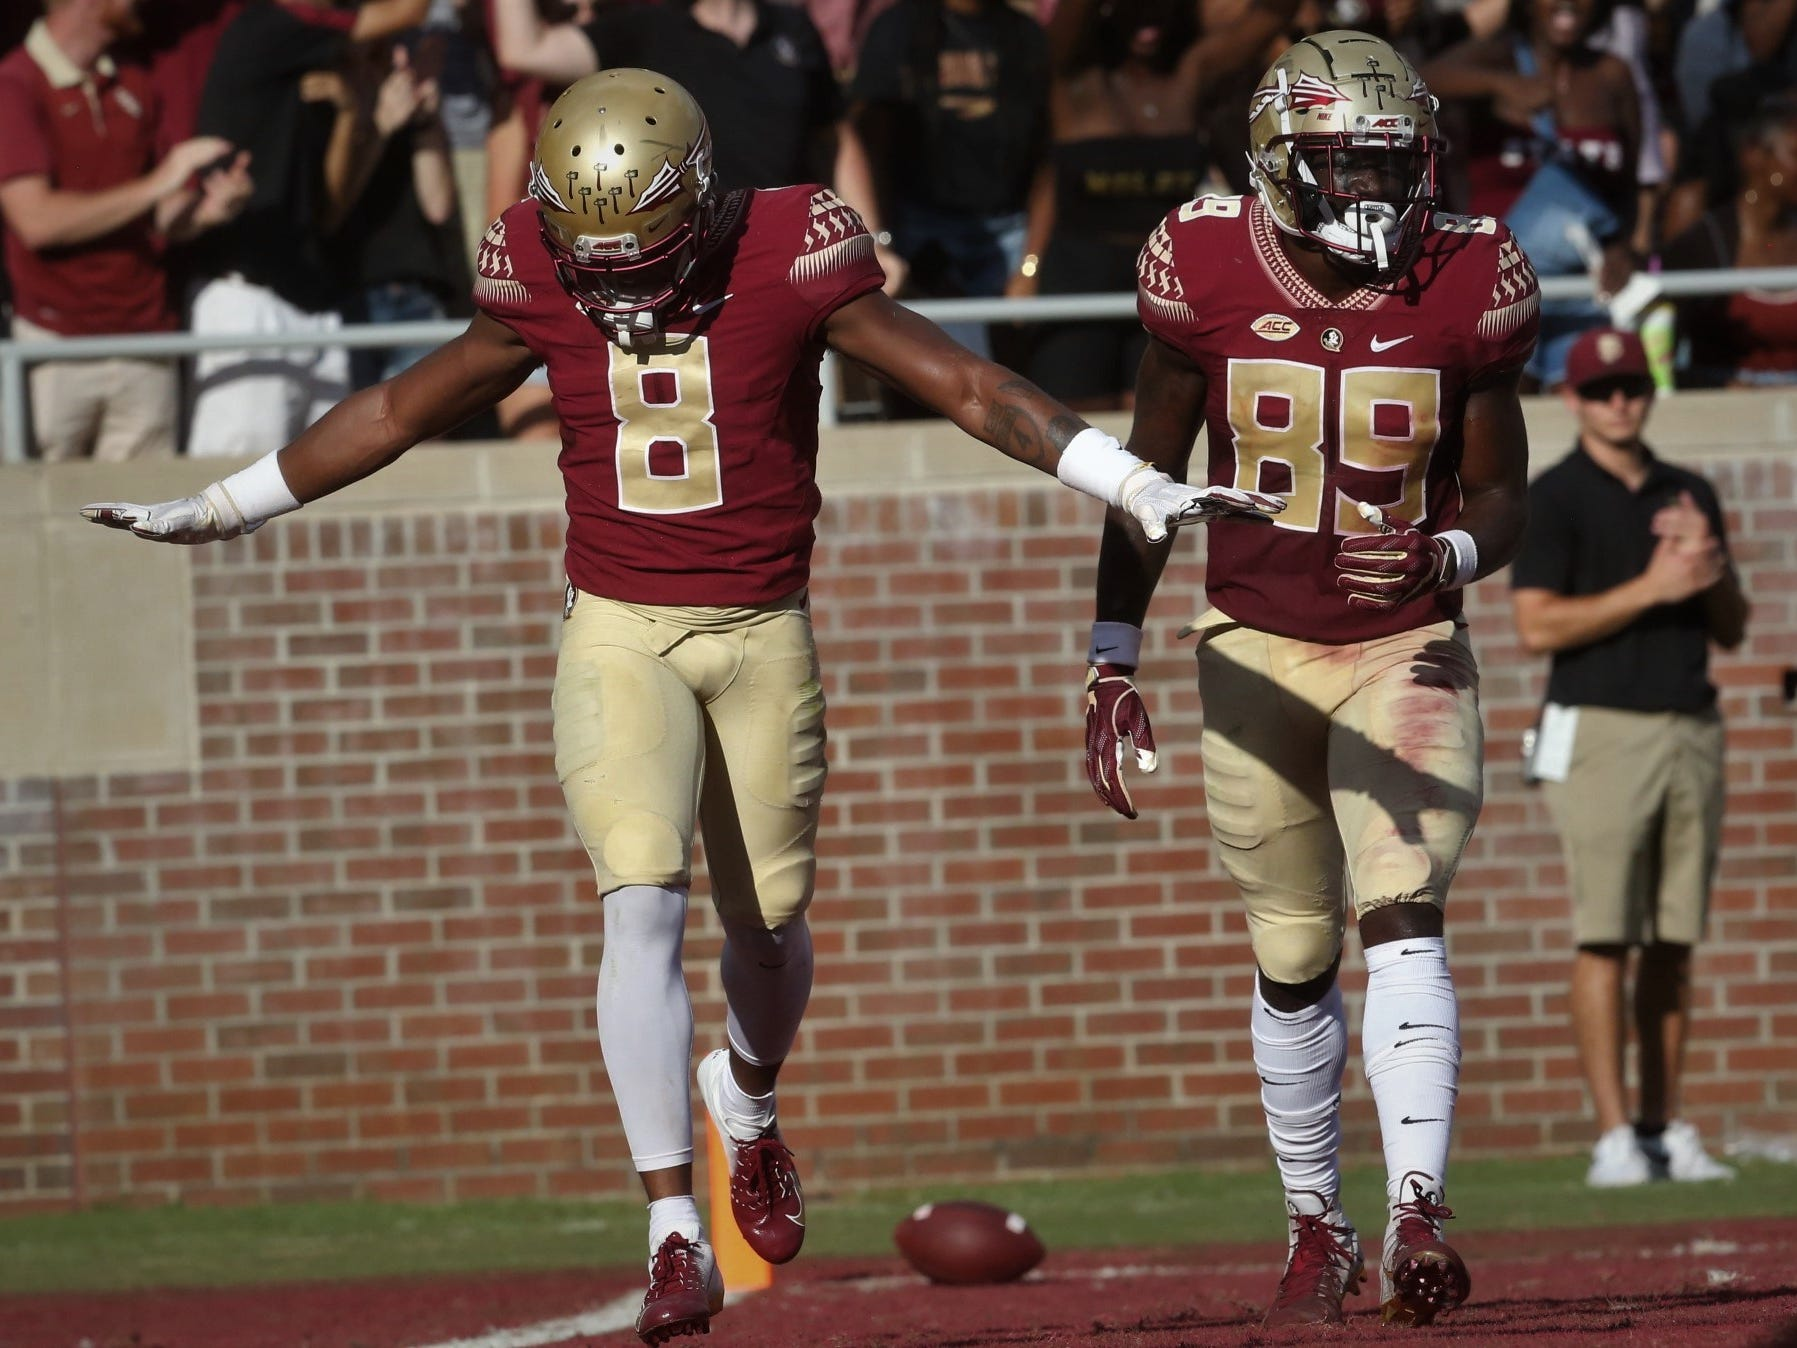 Florida State receiver Nyqwan Murray celebrates a 33-yard touchdown catch against Wake Forest during a game at Doak Campbell Stadium on Saturday, Oct. 20, 2018.